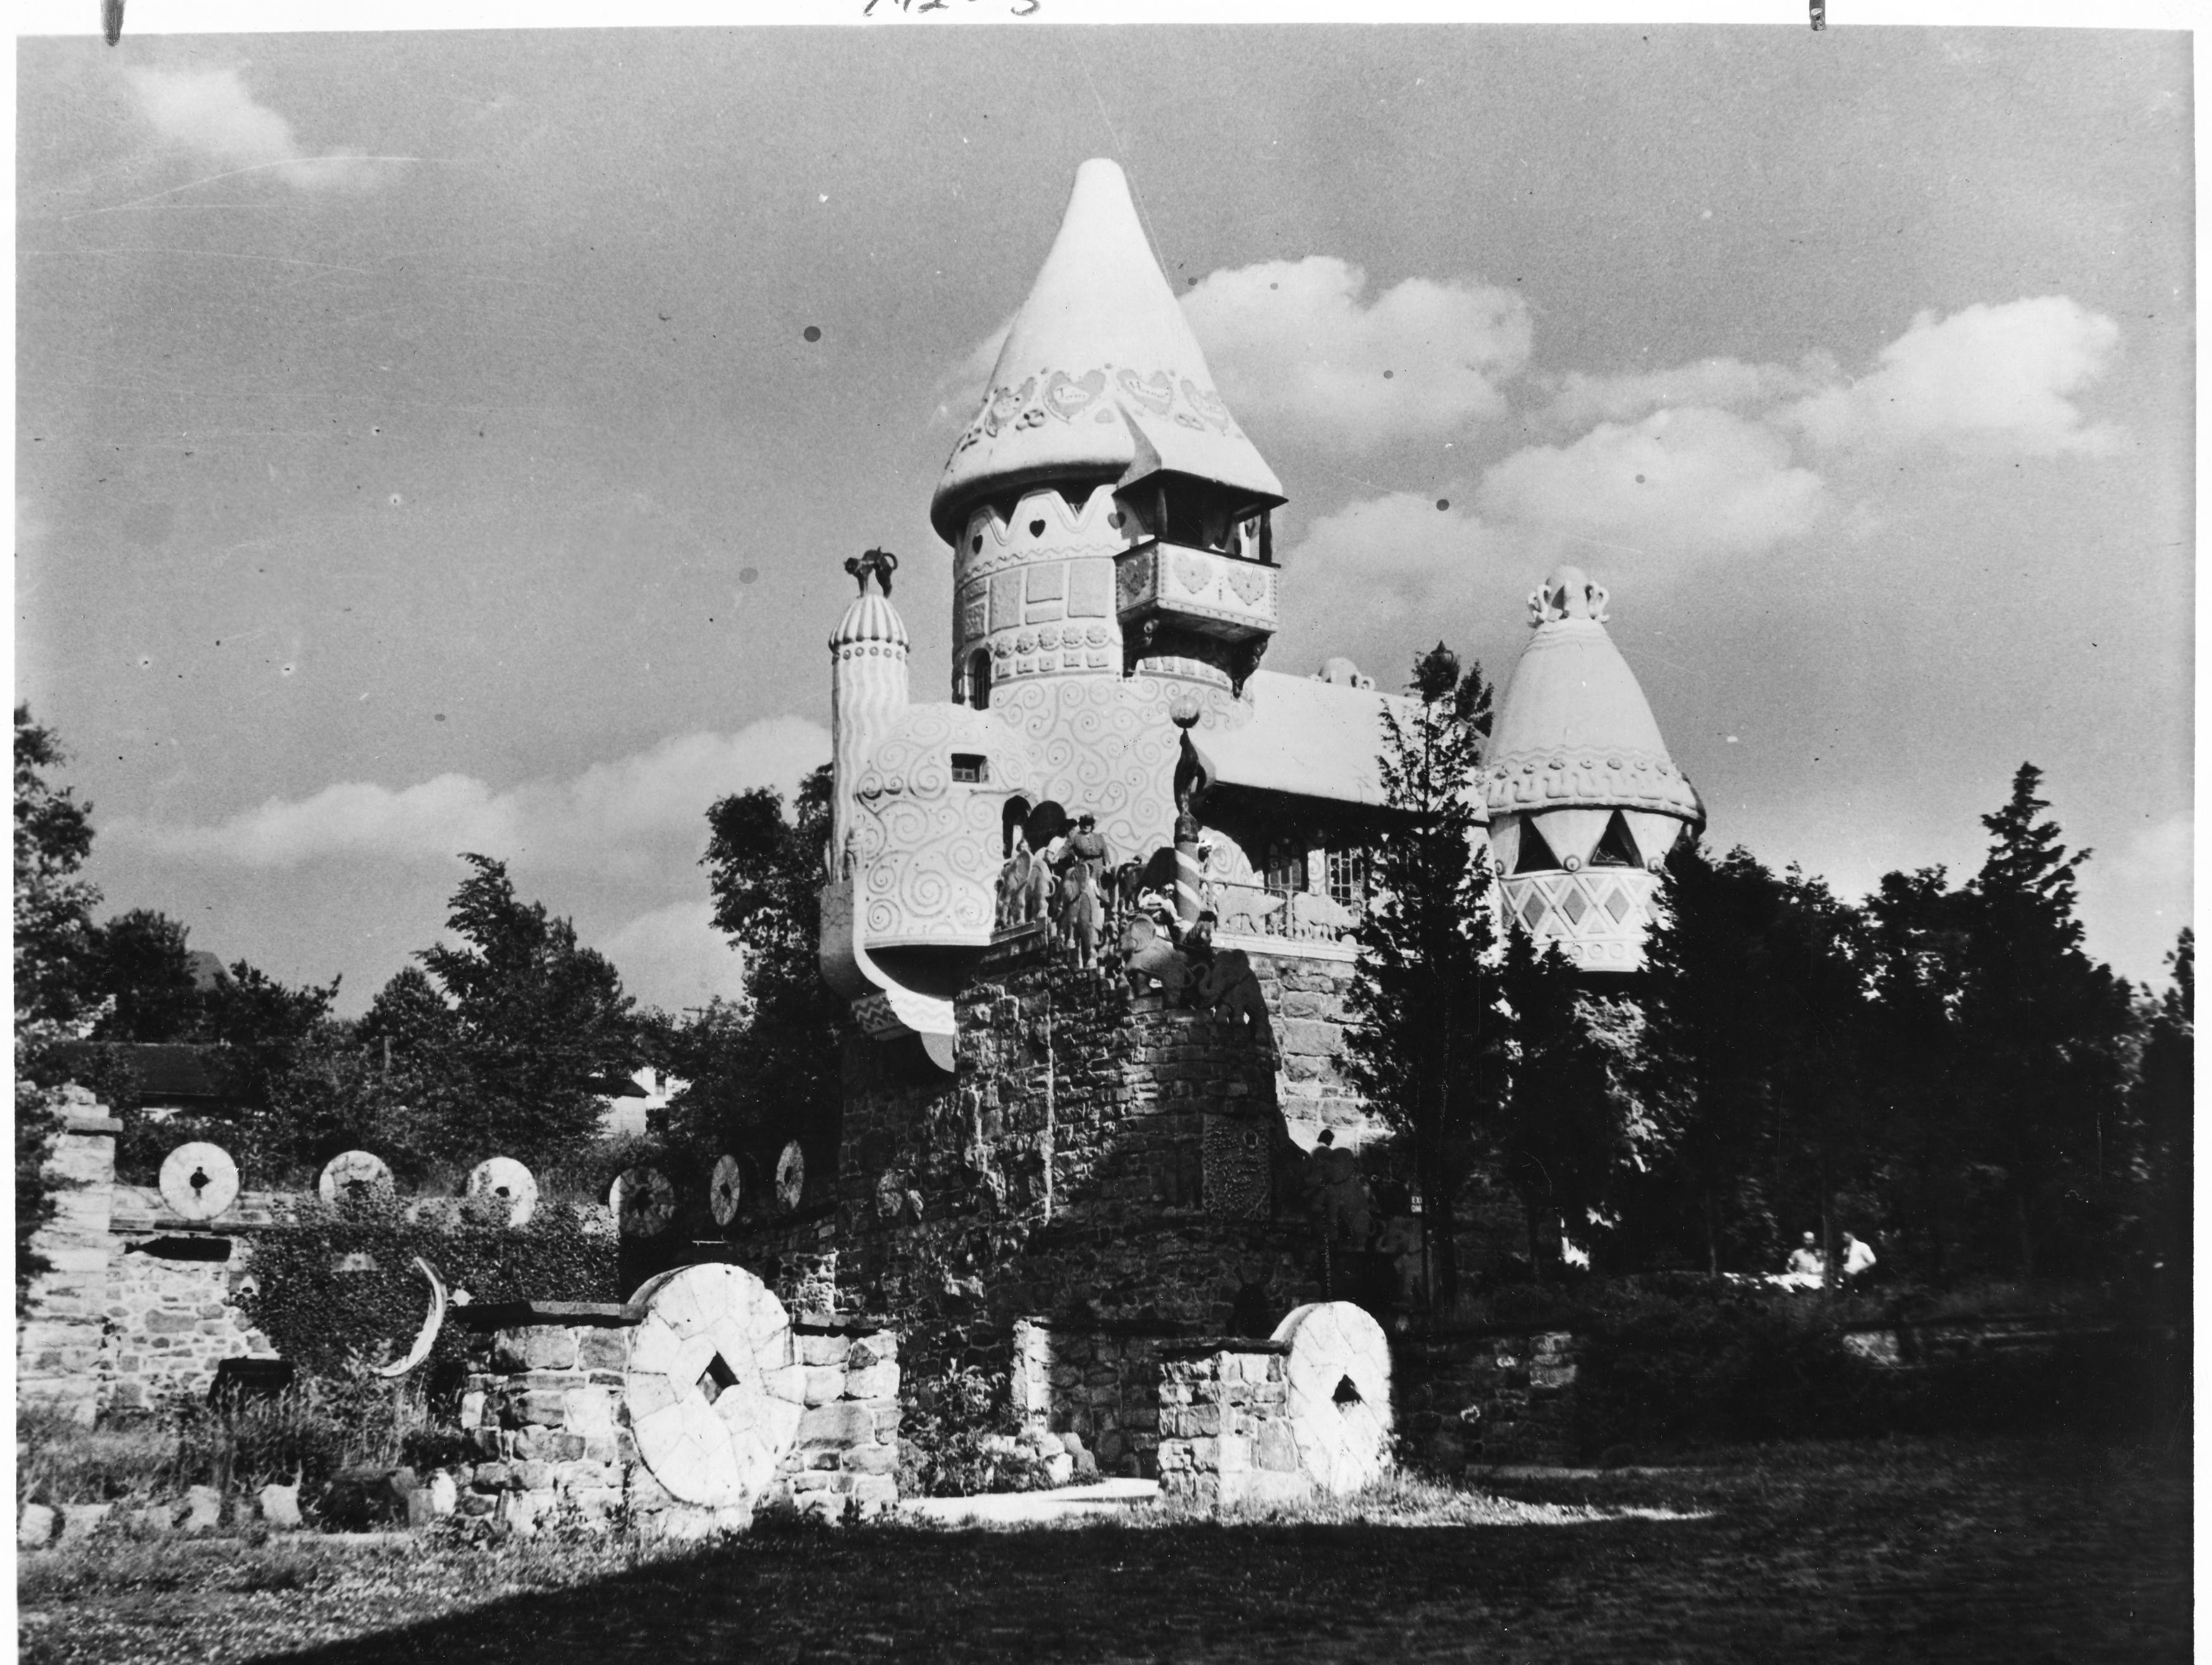 1976: In 1930, the Gingerbread Castle in Hamburg has lured thousands with its promises of fairy tales coming alive. Children and adults can visit Humpty-Dumpty, Prince Charming and Hansel and Gretel among other favorite characters from childhood stories.